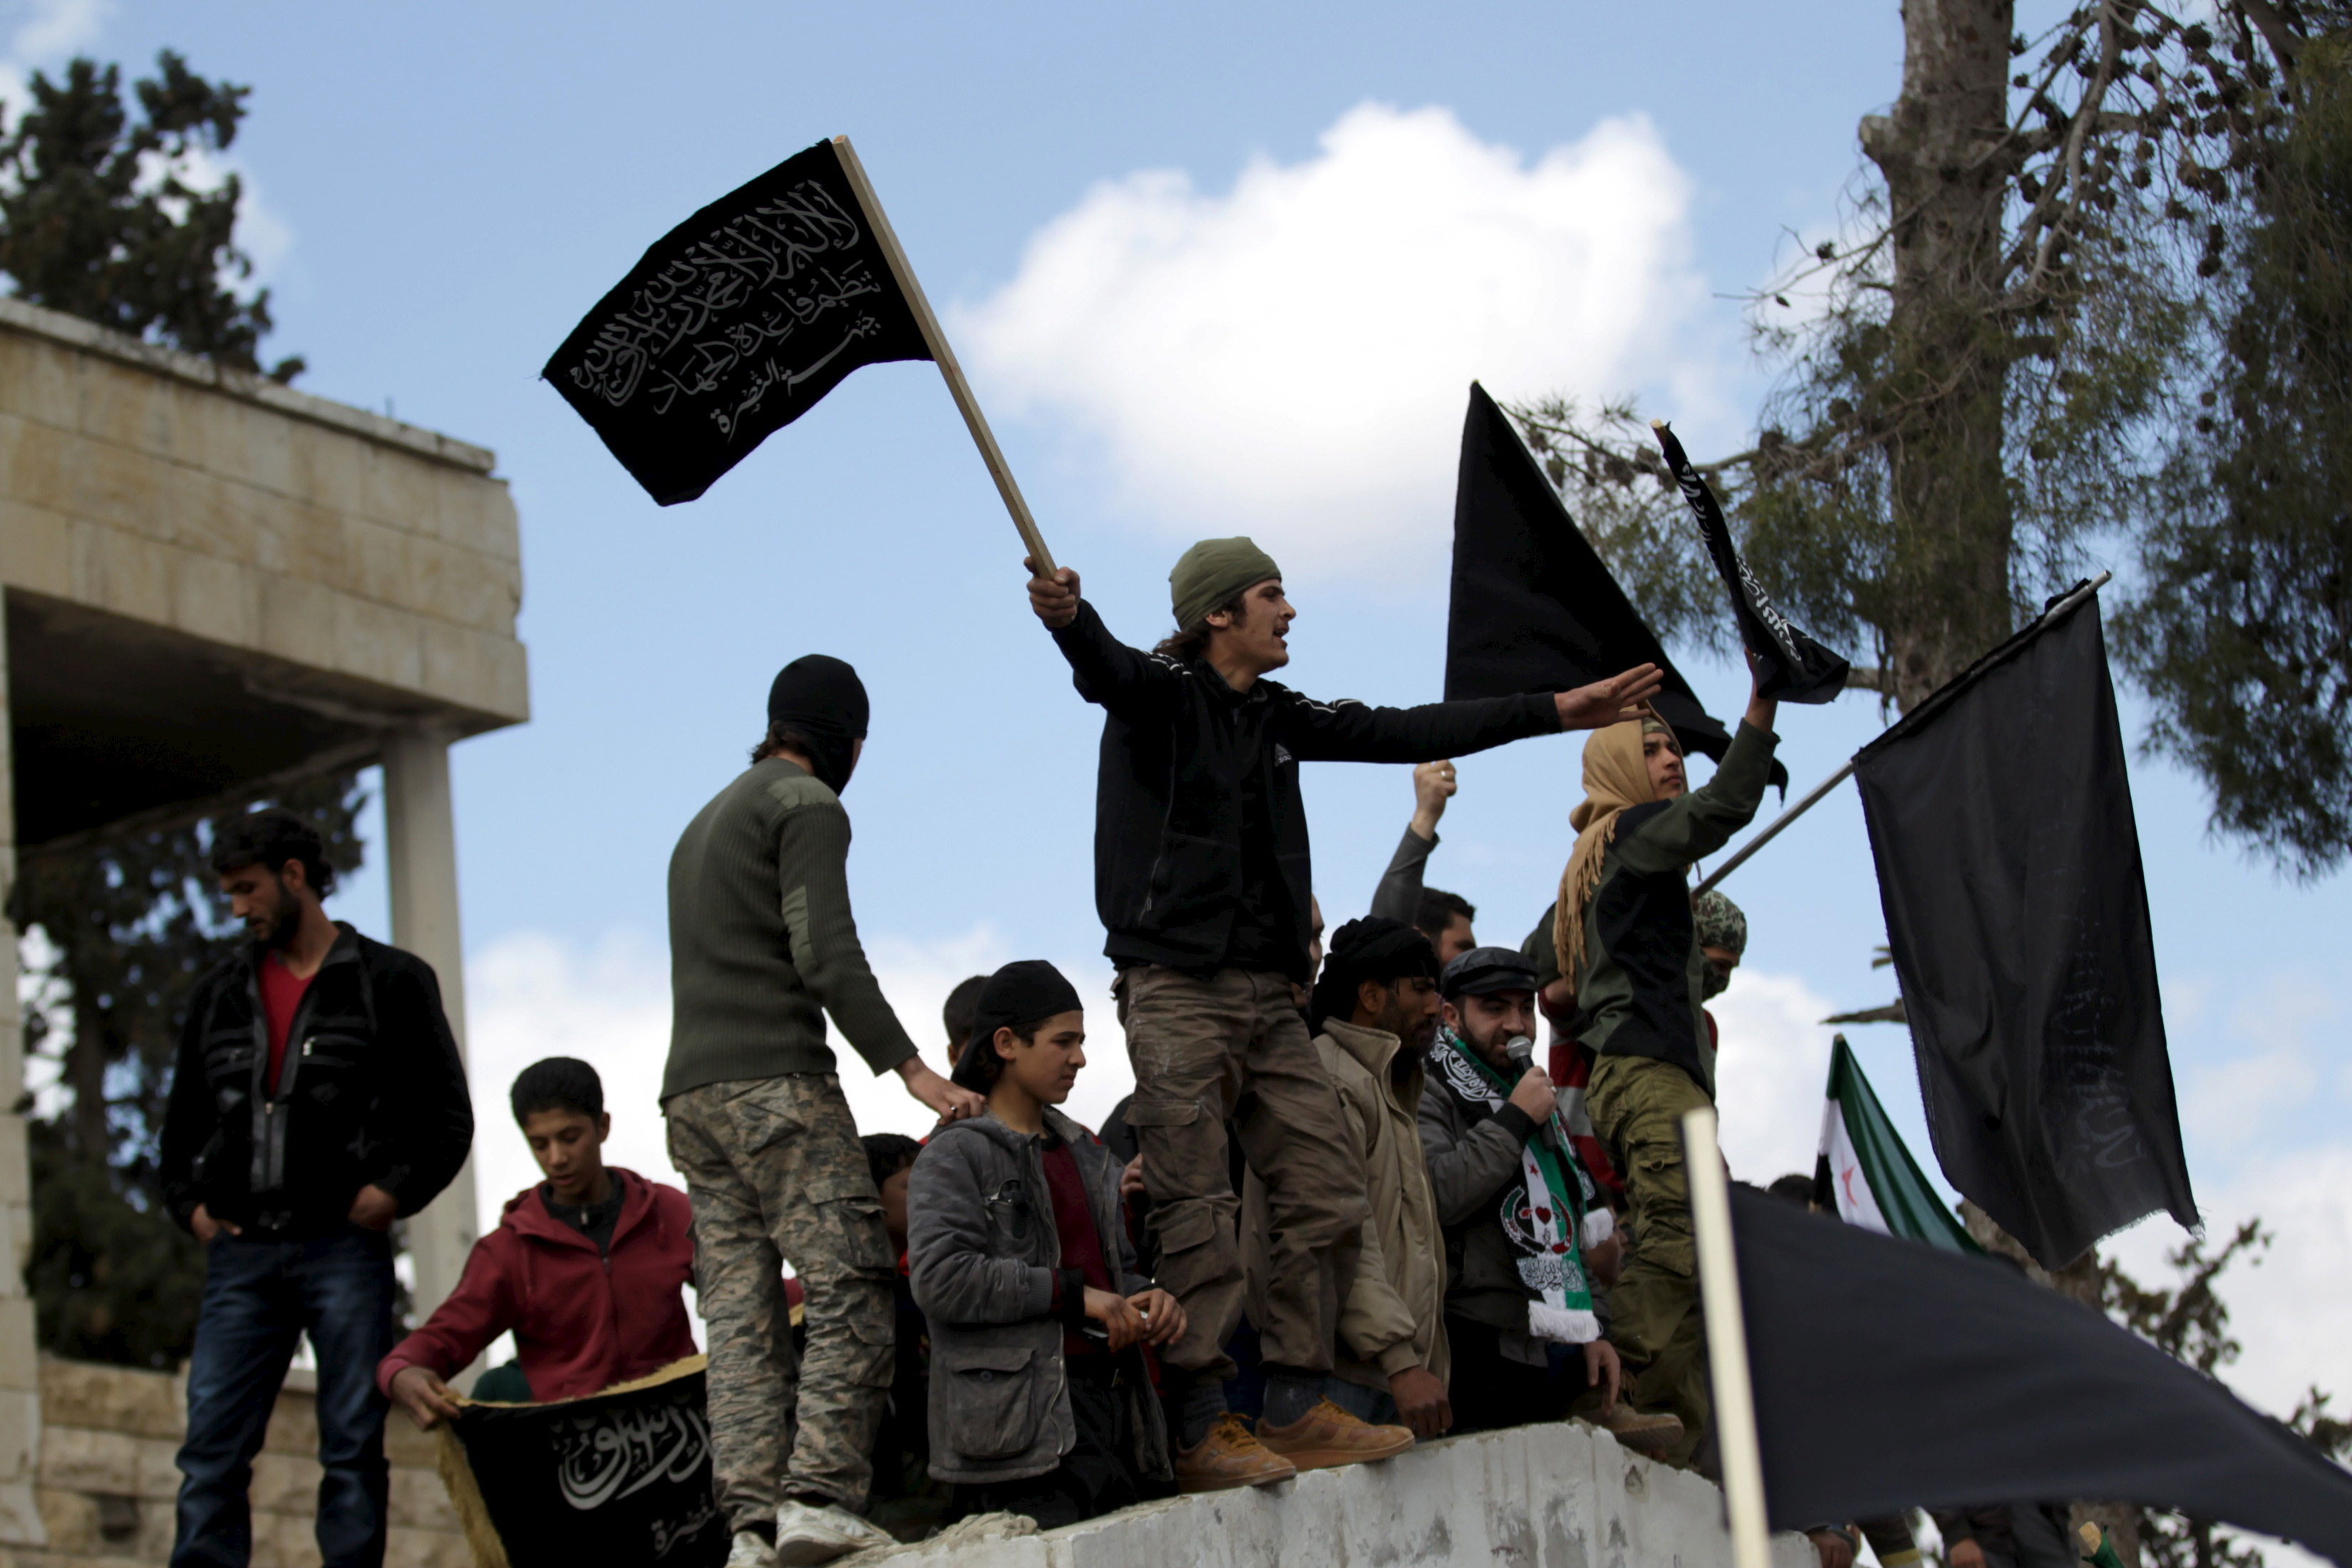 Protesters carry Nusra Front flags and shout slogans during an anti-government protest after Friday prayers in the town of Marat Numan in Idlib province, Syria, March 11, 2016.